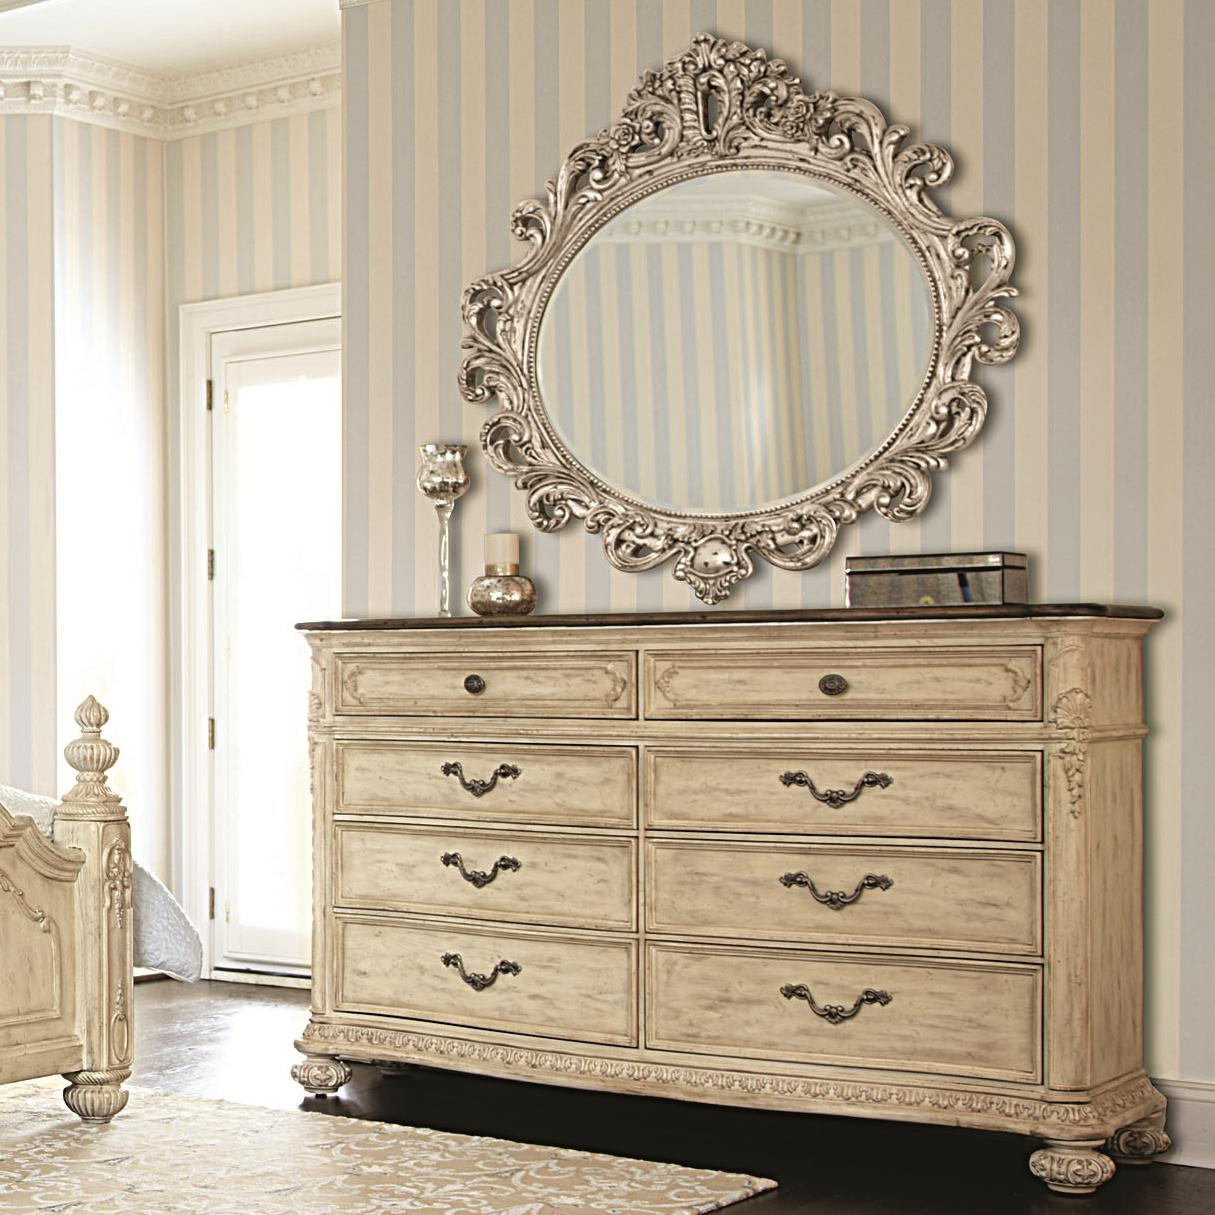 American Drew Jessica McClintock Home - The Boutique Collection Dresser & Mirror - Item Number: 217-130W+040